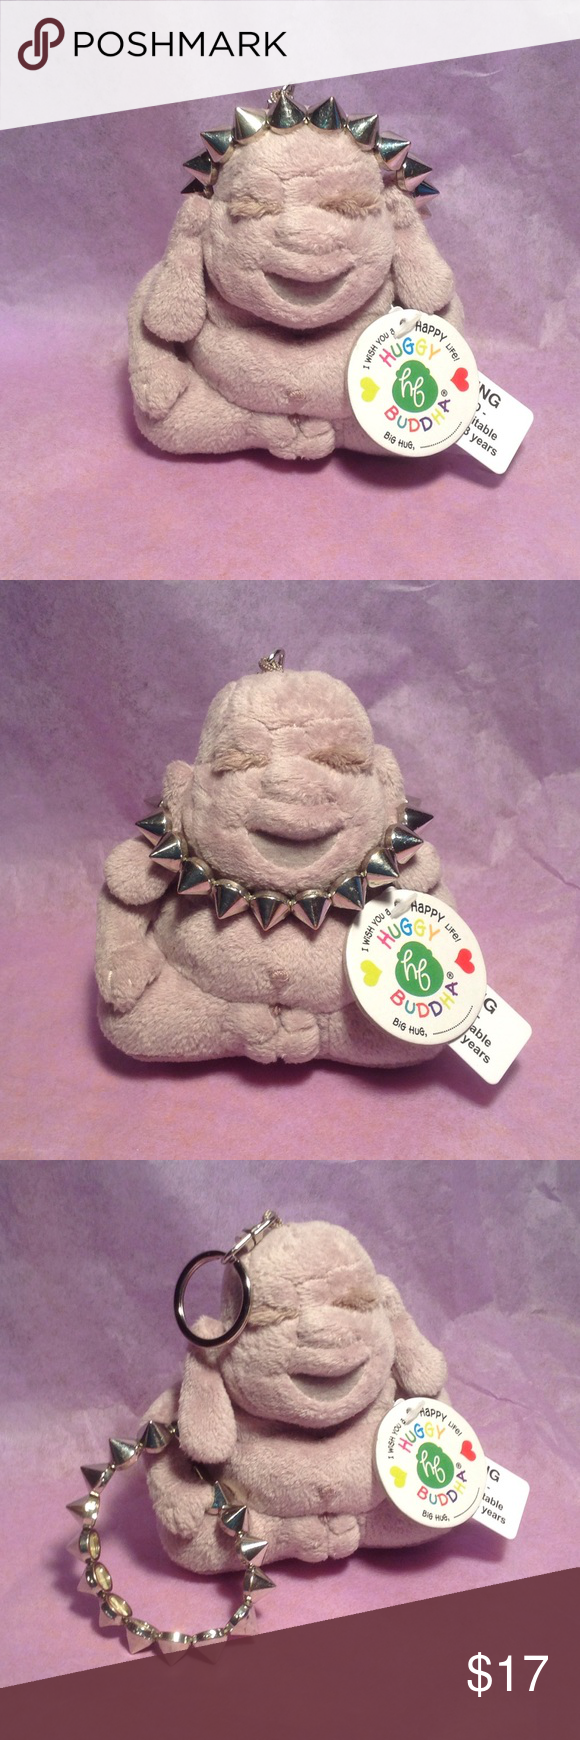 """Huggy Buddha keychain, silver-tone spiked bracelet Brand-new by Gund is a HUGGY BUDDHA plush keychain approx: 4"""" x 4"""".  On his tag it says """"I wish you a happy life,"""". BIG HUG. This is NOT A TOY! He is adorned with a excellent used condition spiked silver tone stretch bracelet. The bracelet measures 2.5 inches in diameter. It's made on double strands, very strong.  Excellent used condition. Non Branded Bracelet Jewelry Bracelets"""